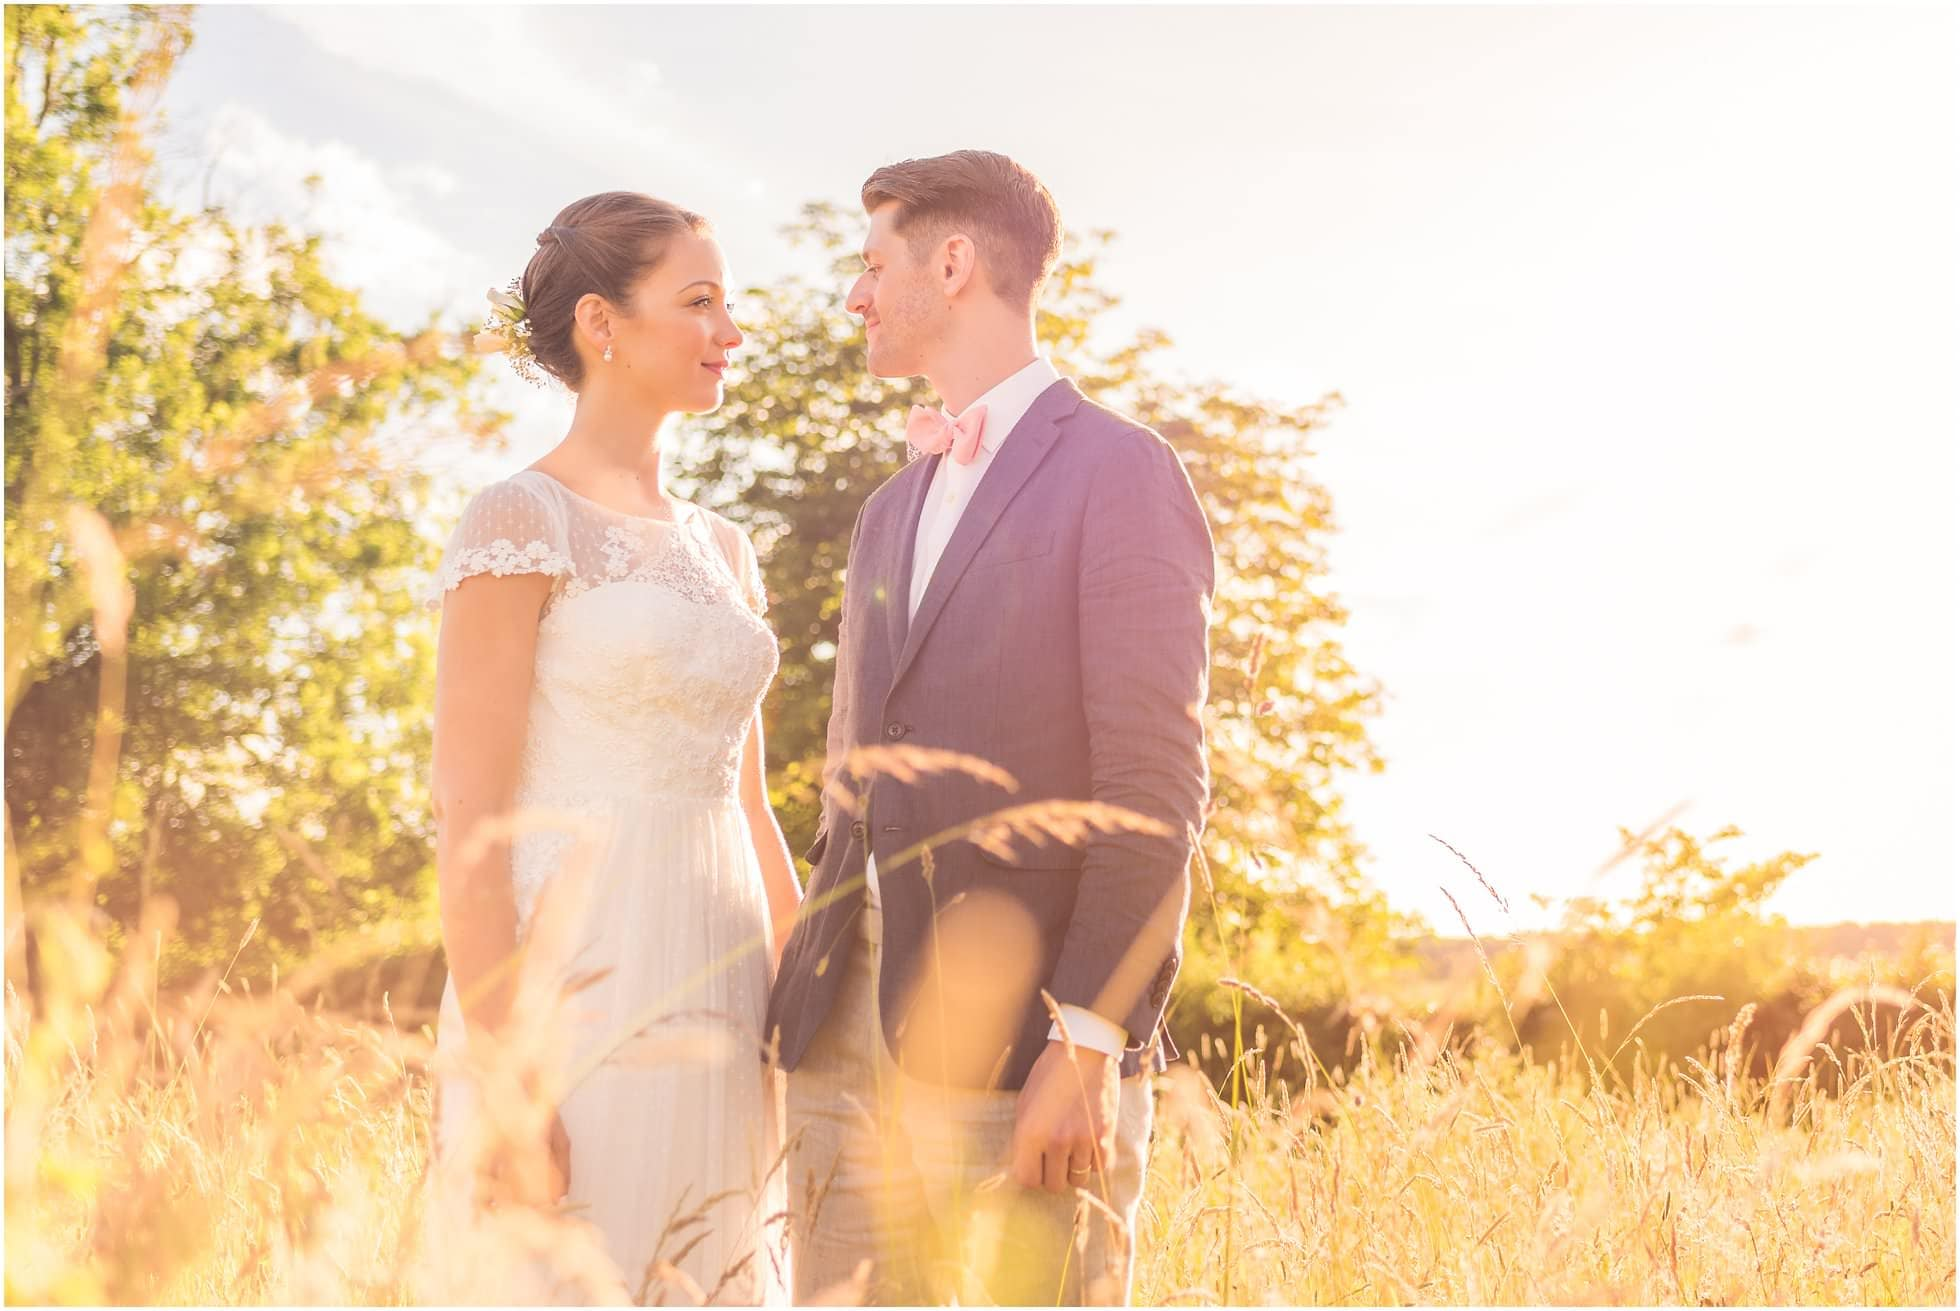 Suffolk Garden Wedding Photographer, Winston Sanders shot of the stunning bride and groom at golden hour